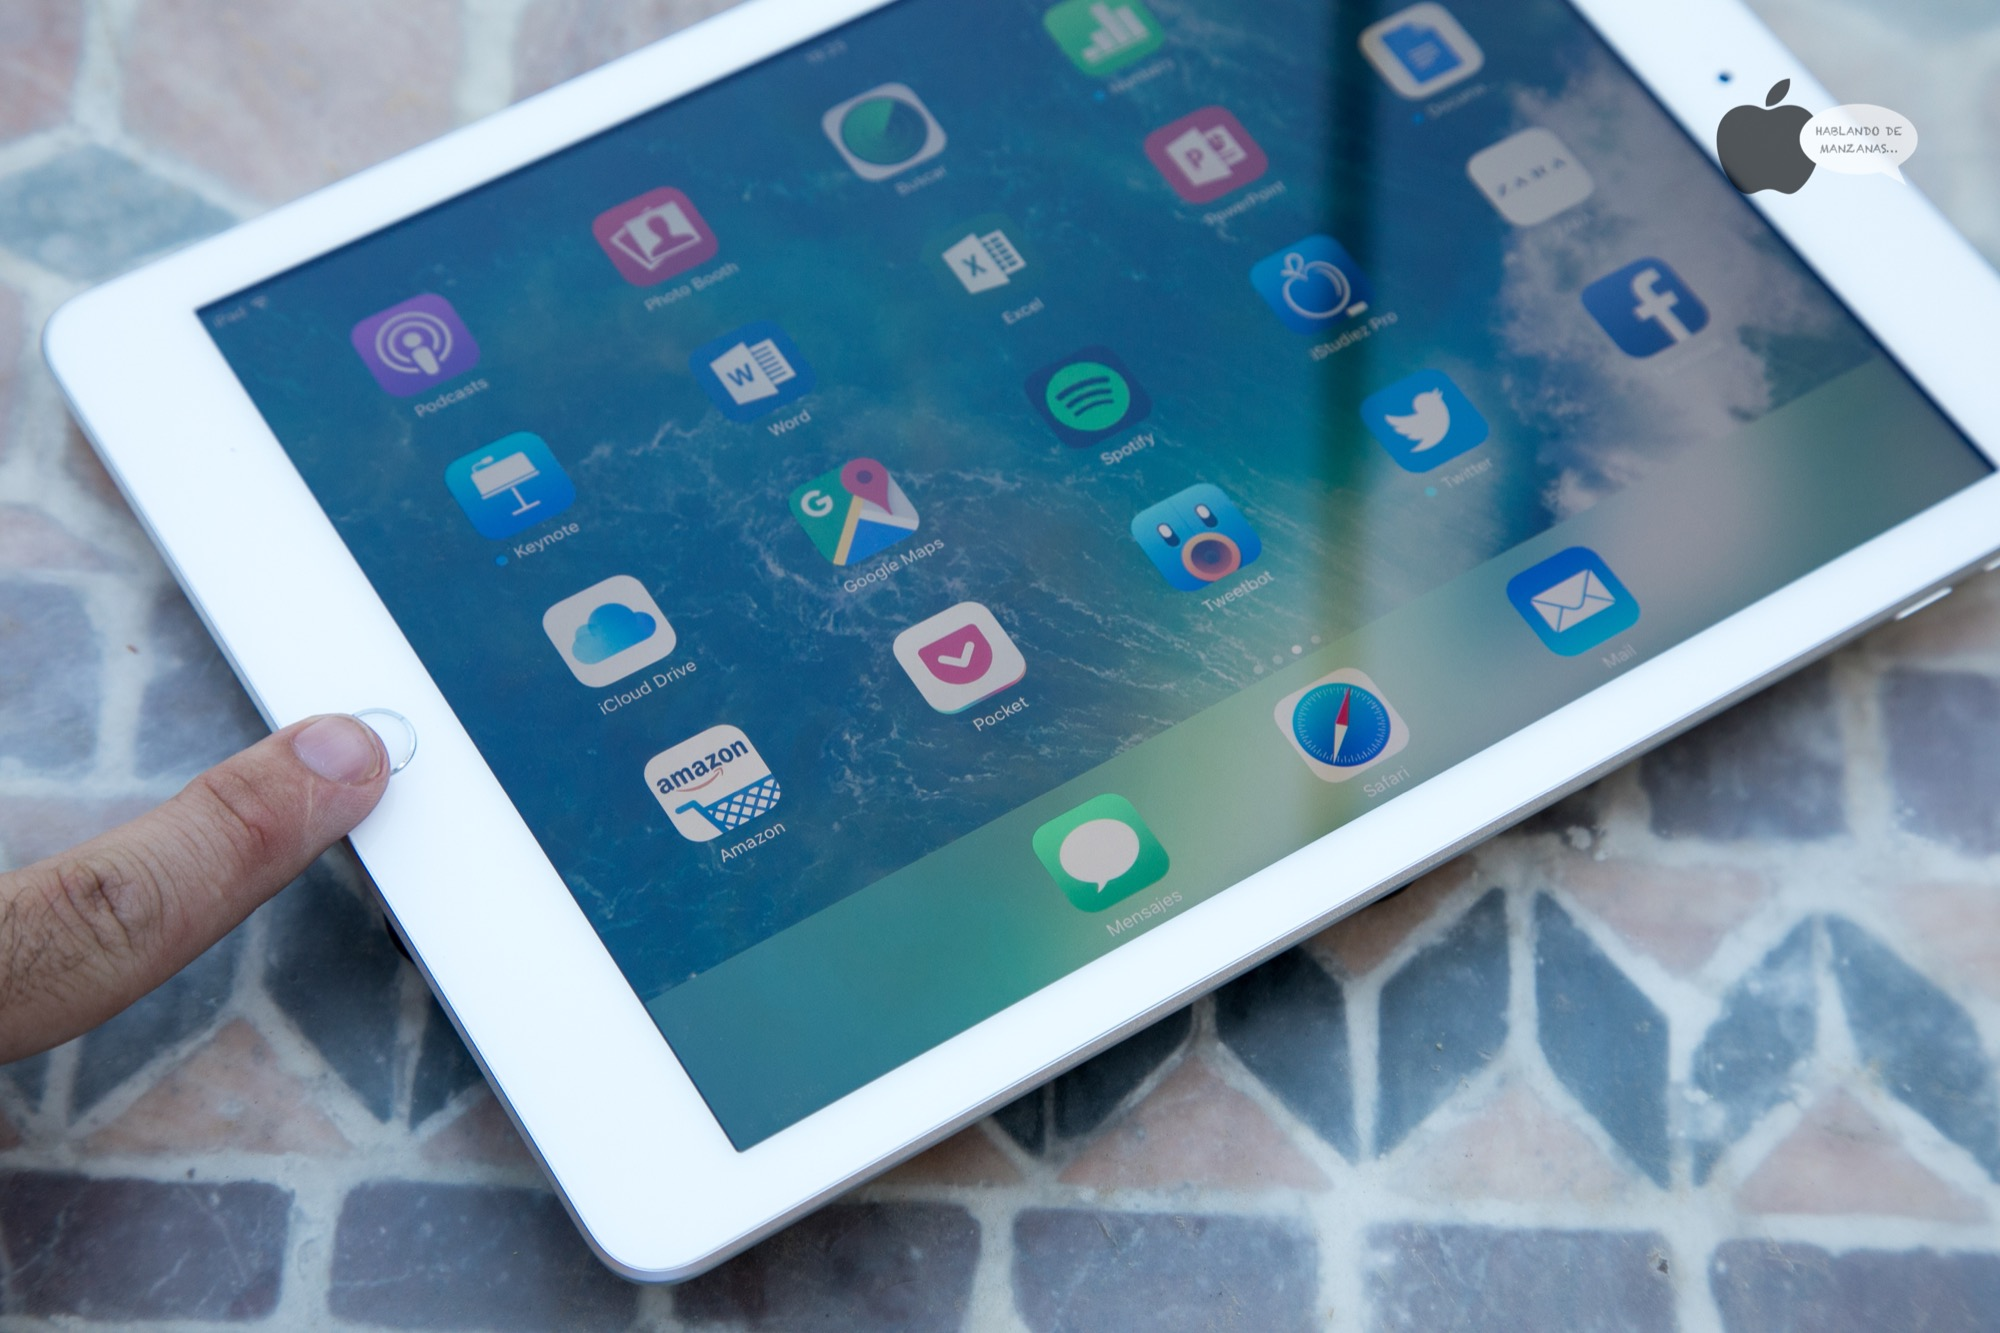 Análisis-Review-Apple-Ipad-2017-Opinion-Test-Caracteristicas-Tecnicas